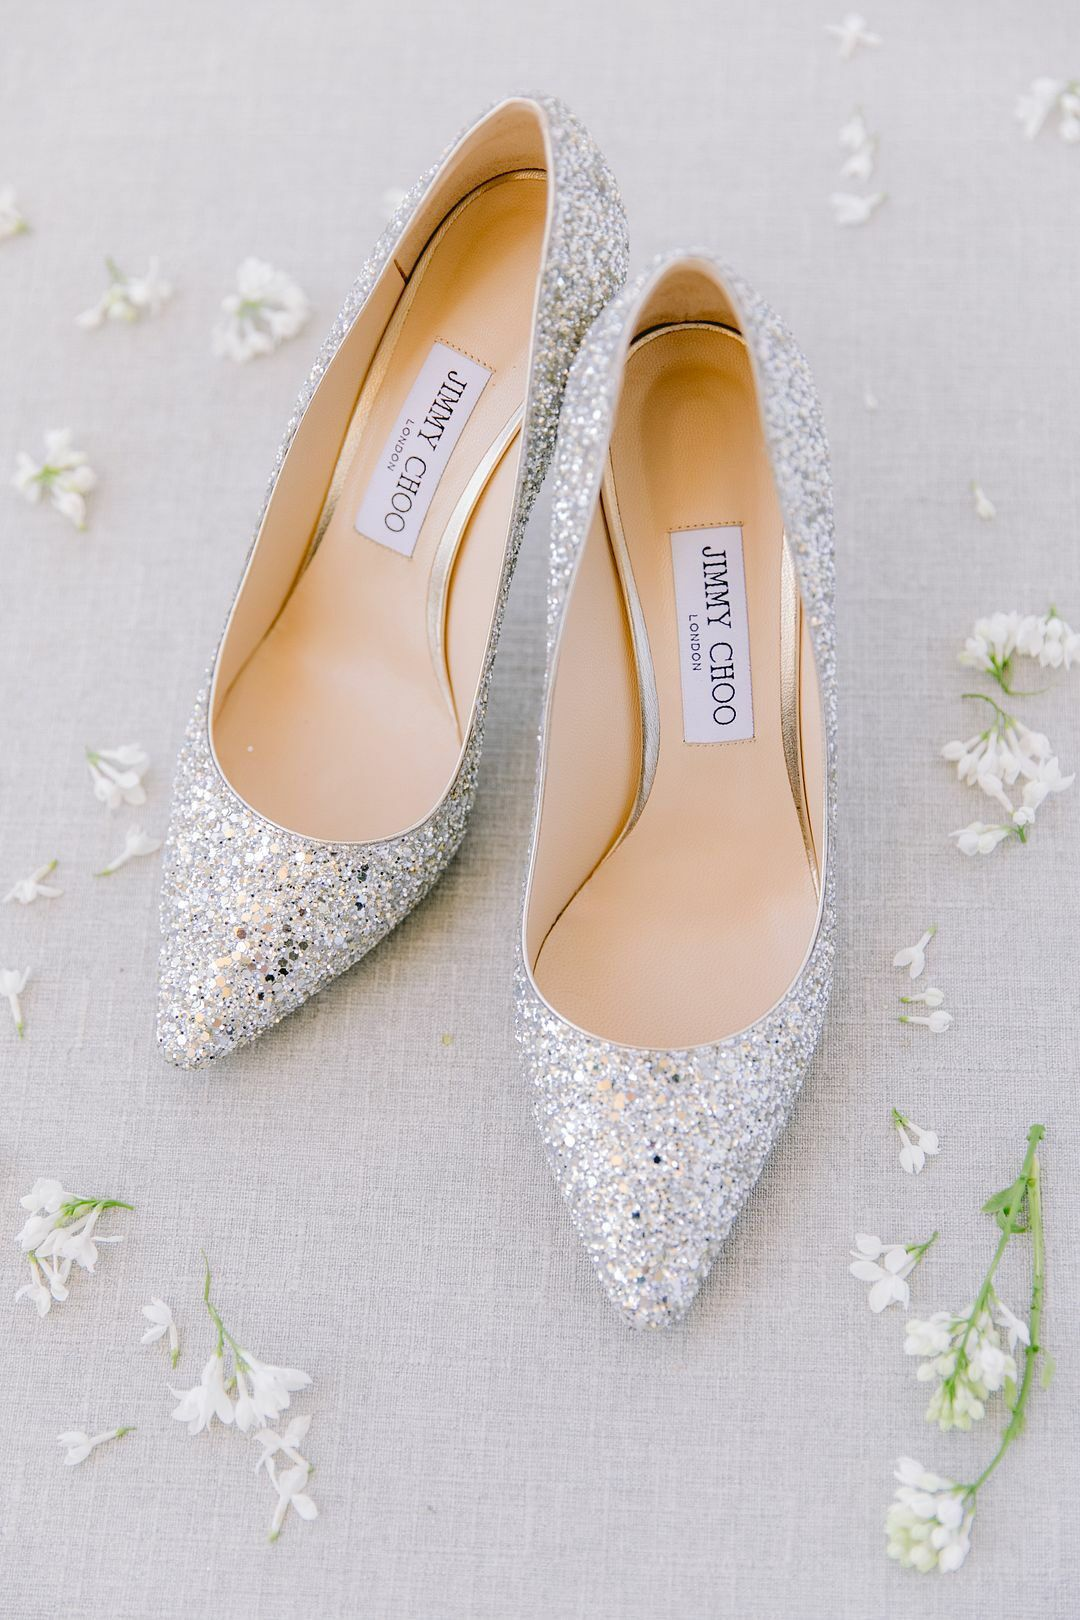 Glamorous Jimmy Choo Silver Bridal Heels With Sparkles Casual Wedding Shoes Wedding Shoes Bridal Heels